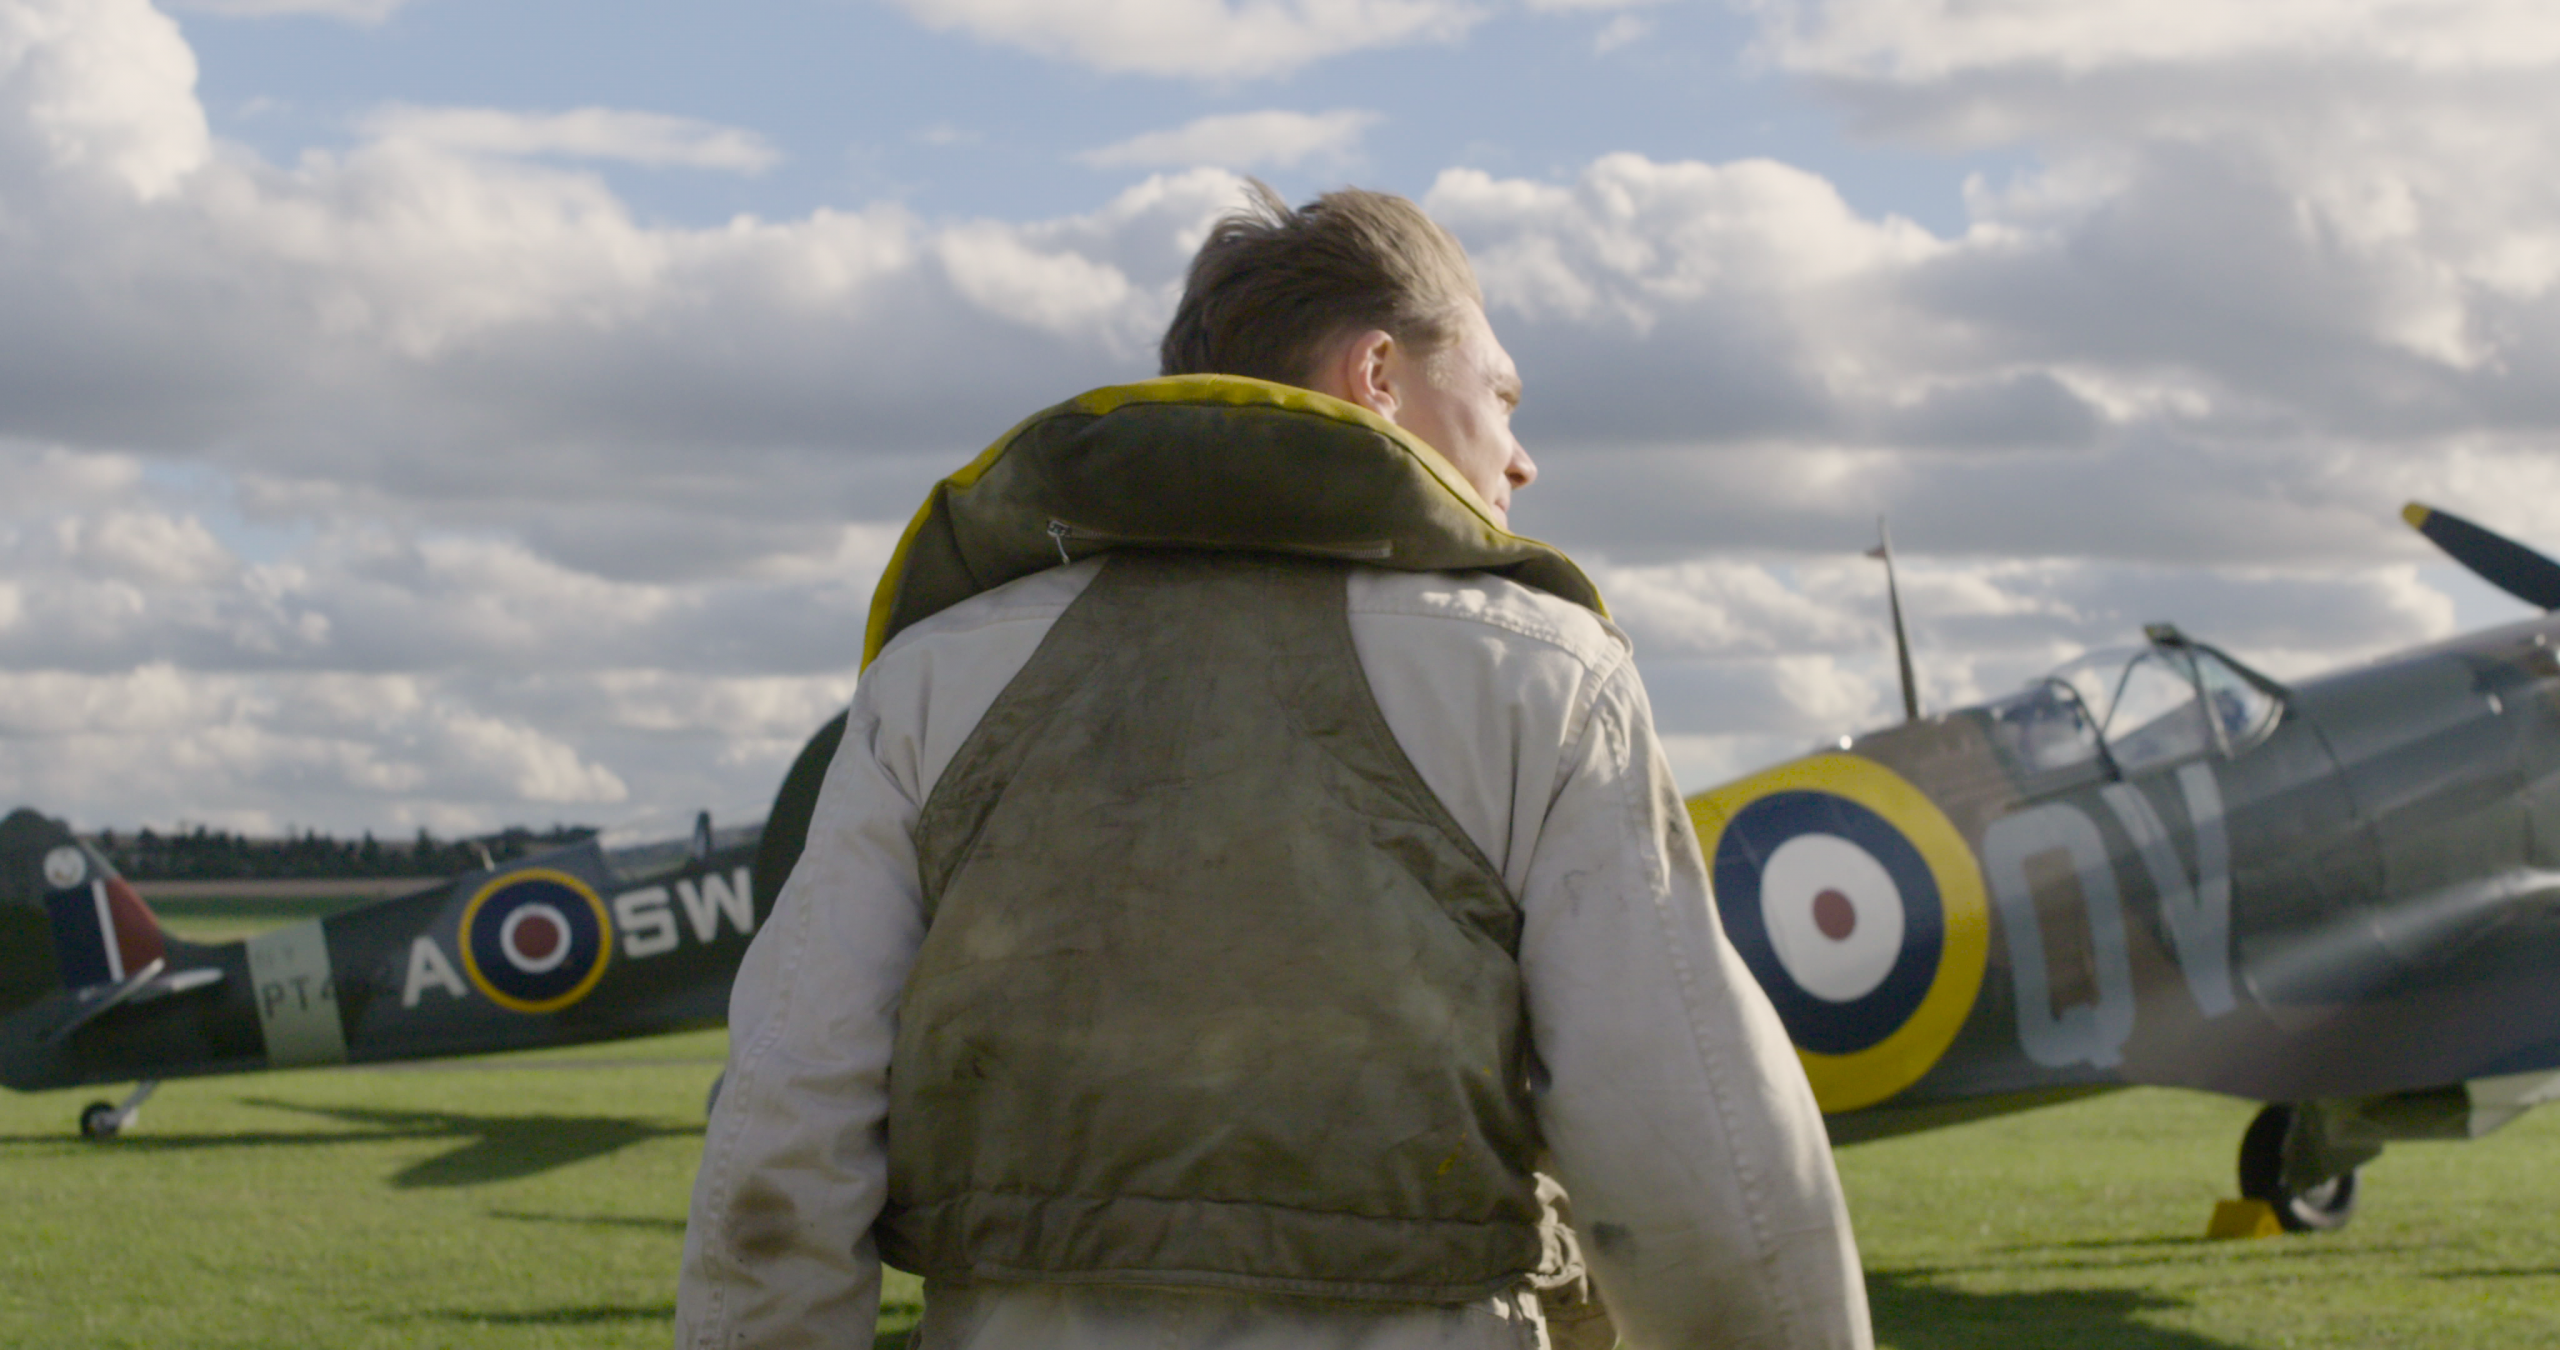 Battle Of Britain - Back Of Man